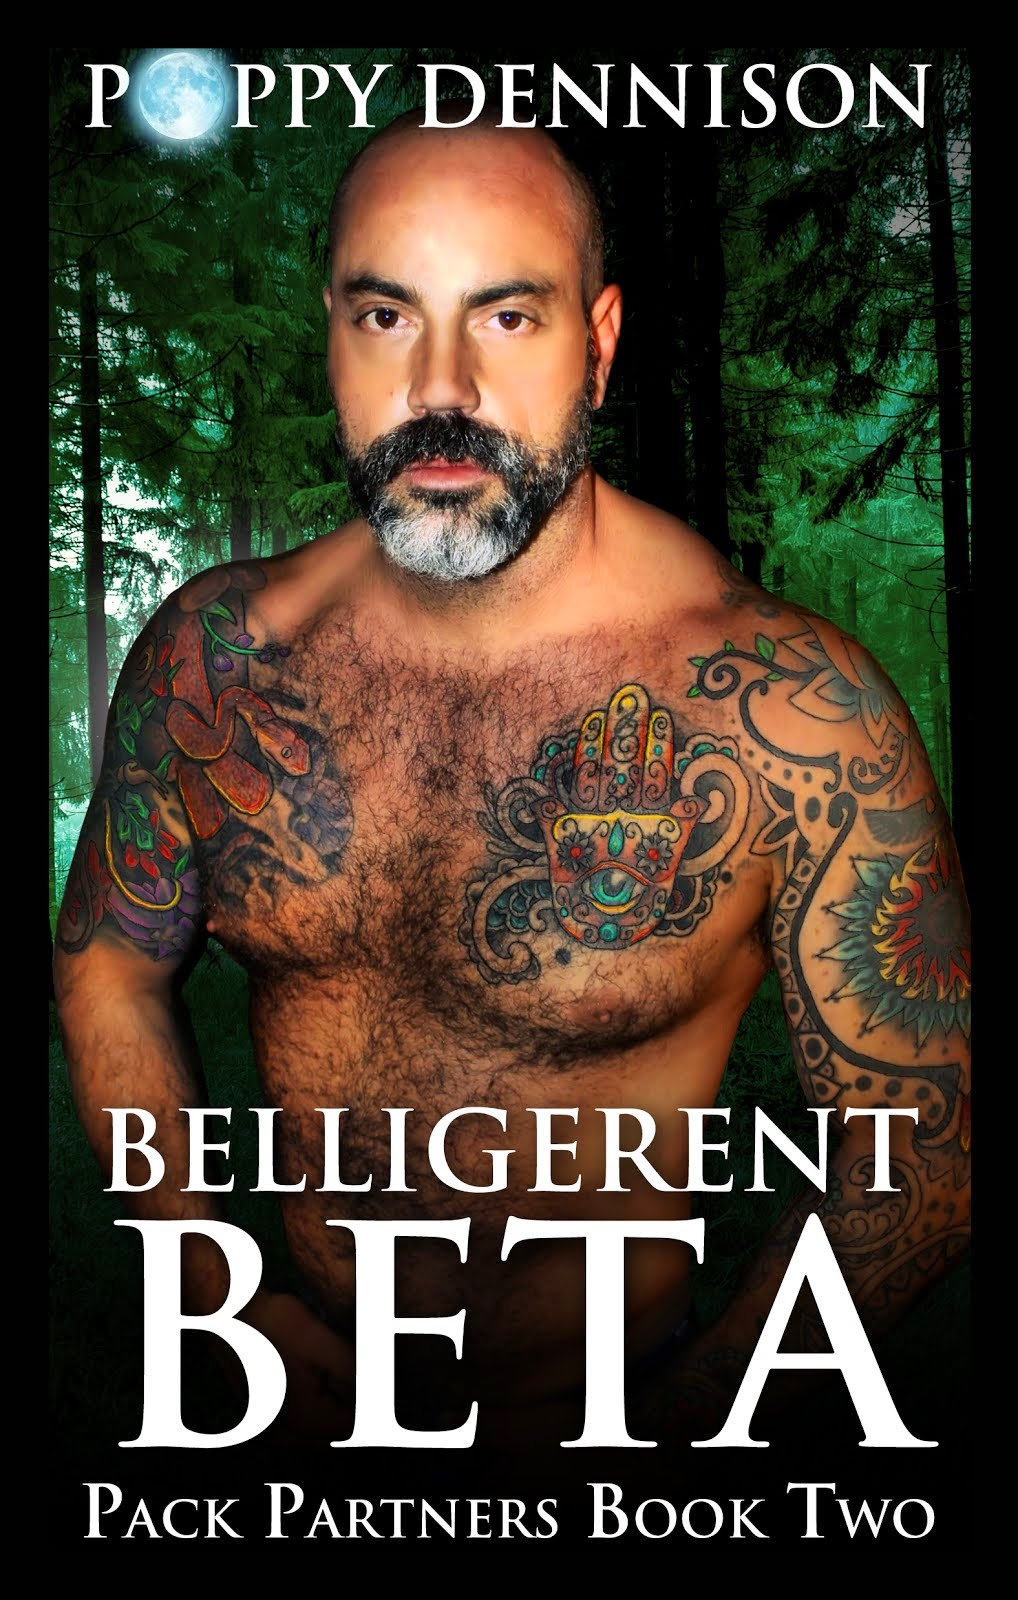 Belligerent Beta